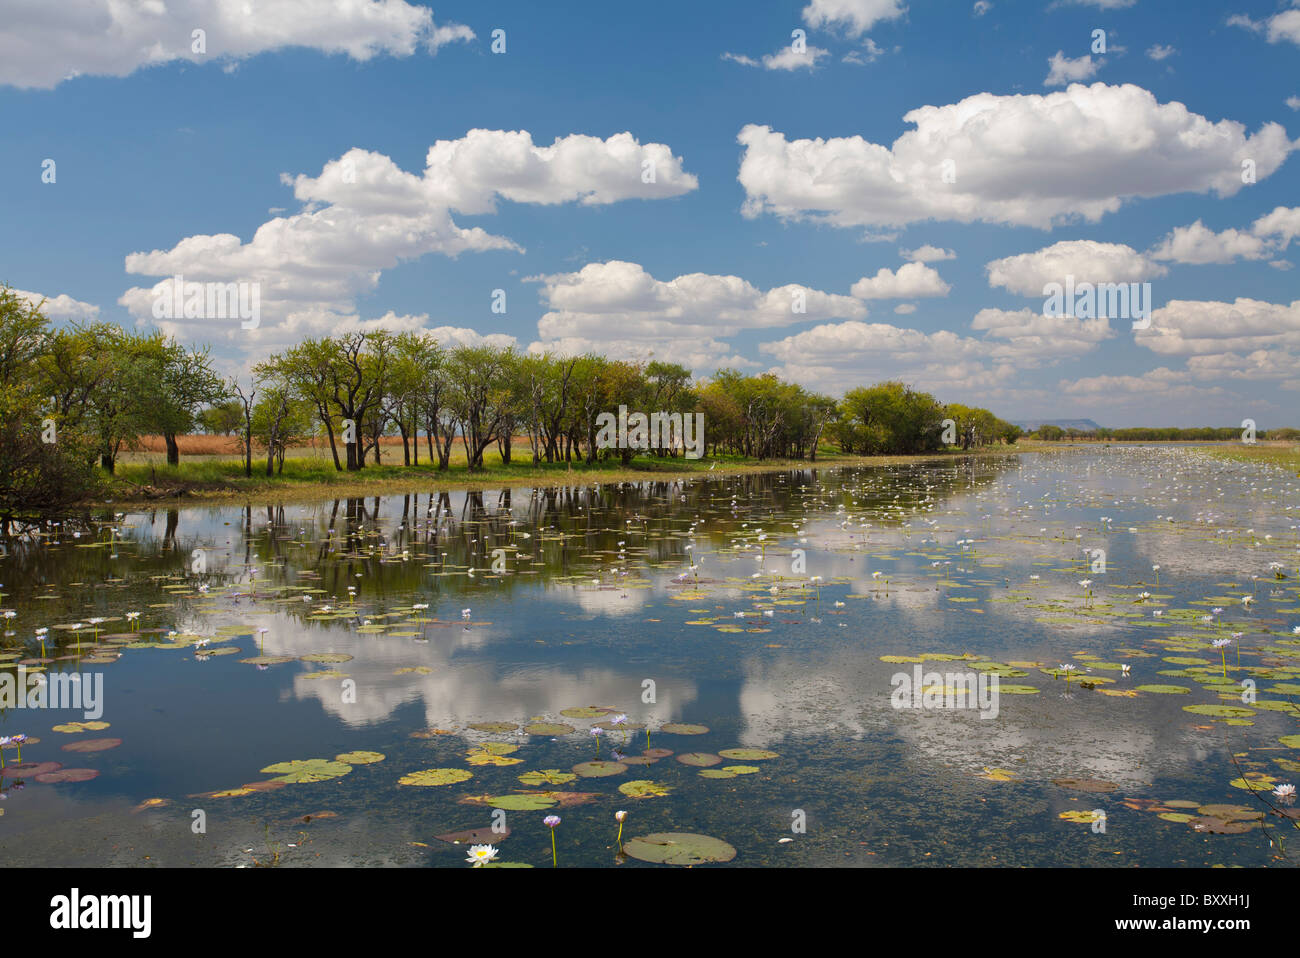 Parry Lagoons between Wyndham and Kununurra, Kimberley, Western Australia - Stock Image